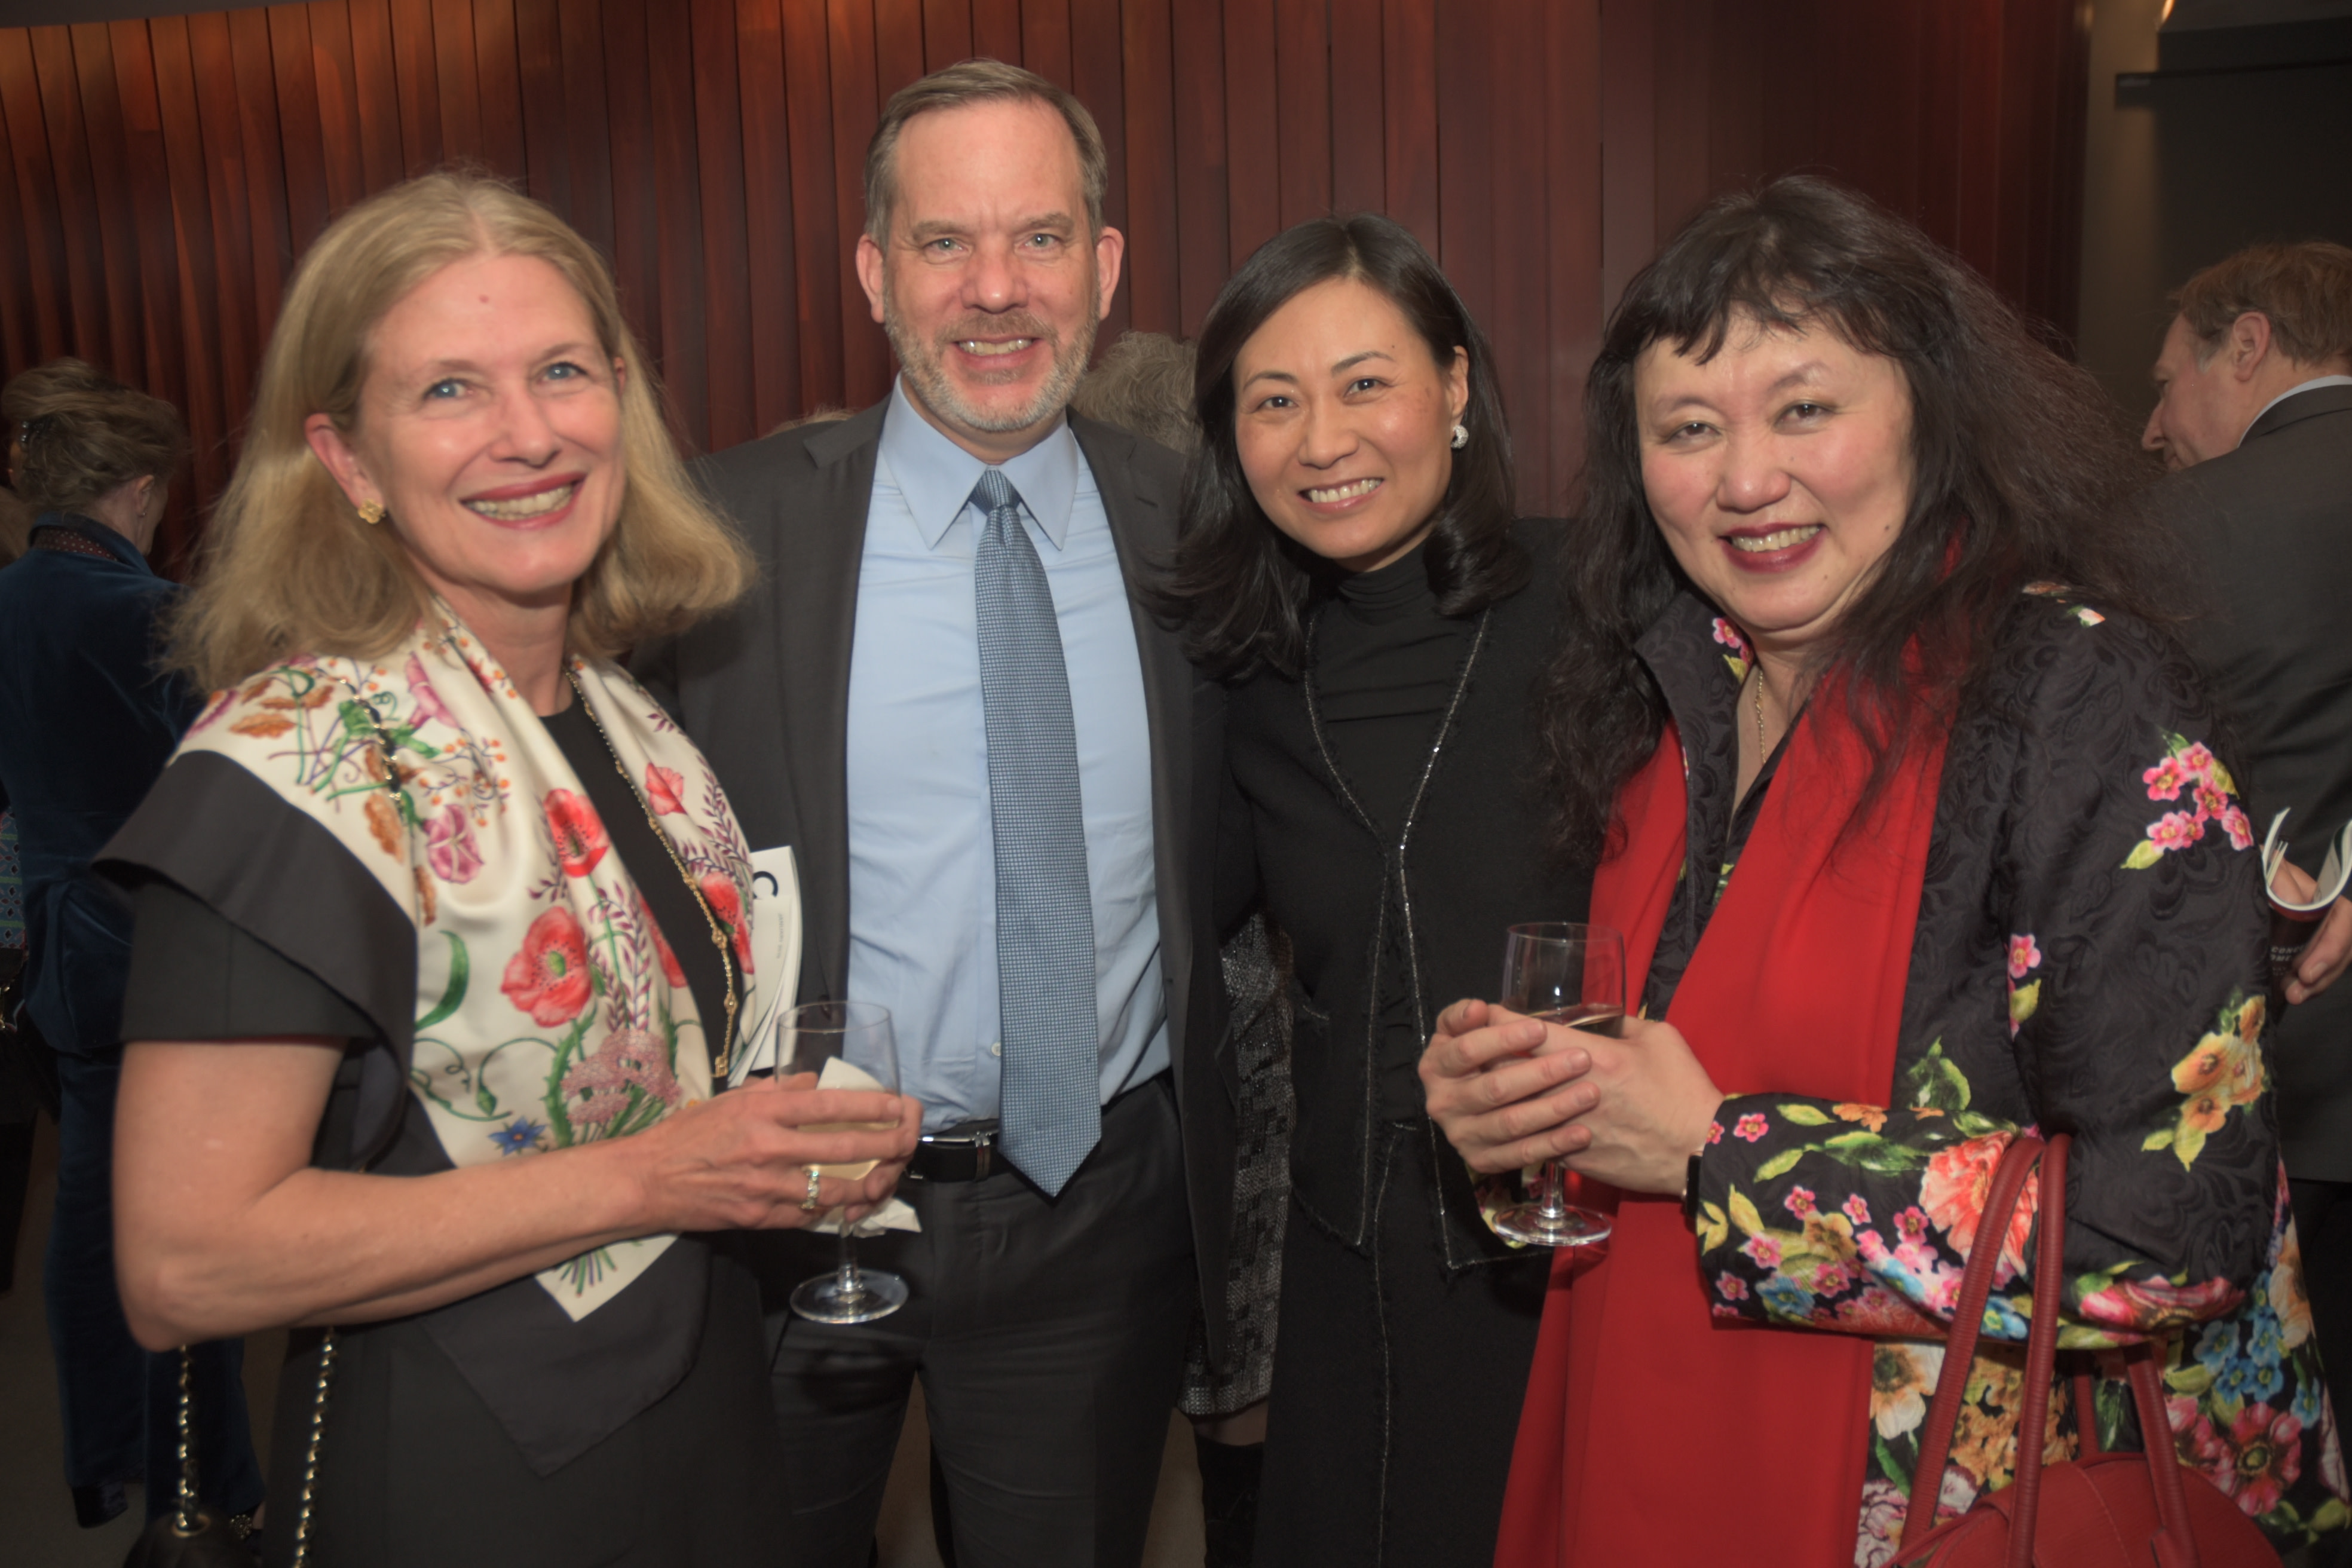 Marianne Fouhey, Andrew and Elinor Hoover, Artistic Director Wu Han